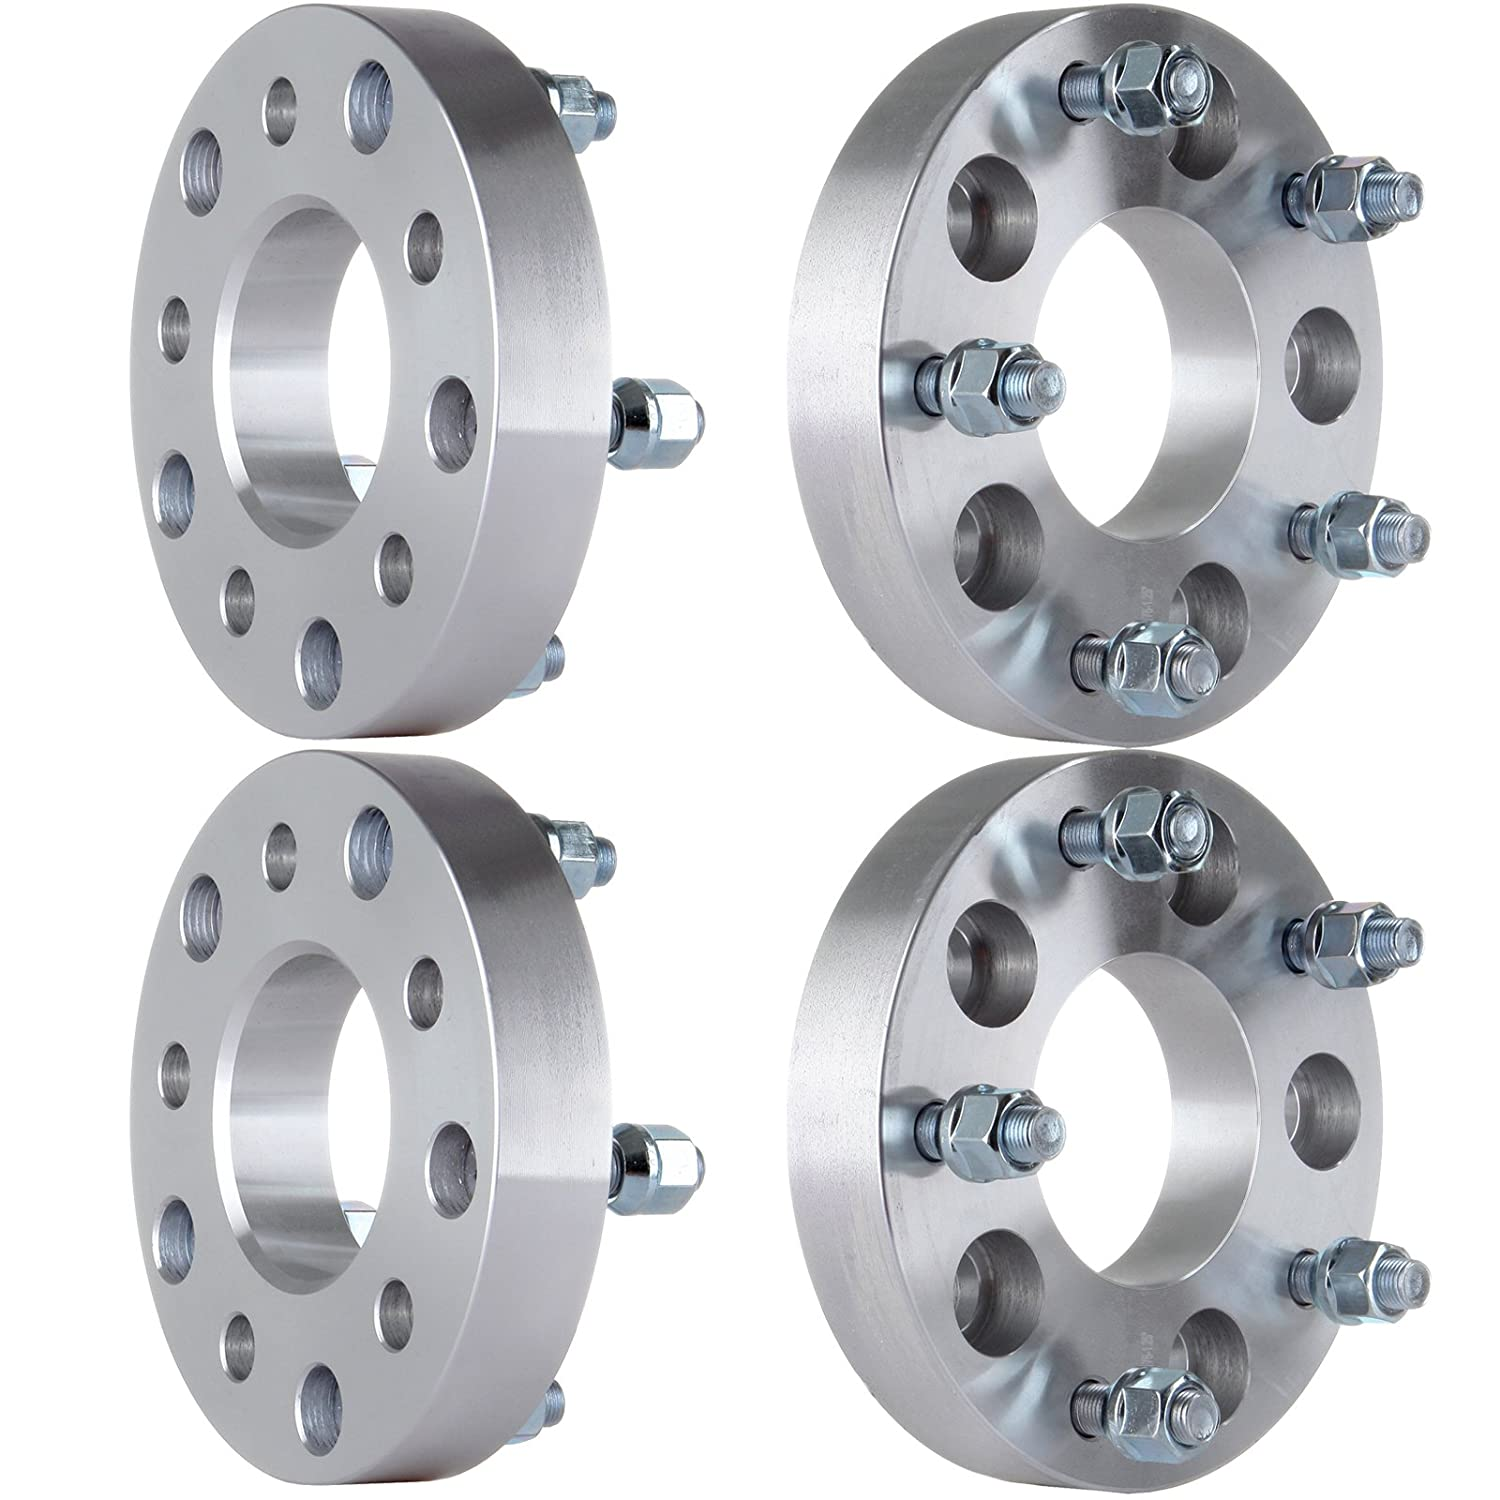 ECCPP 4PCS 1.25' 5x5 to 5x5.5 | 5x127 to 5x139.7 Wheel Spacers Fits GMC Buick Chevrolet Tahoe with 1/2' Studs